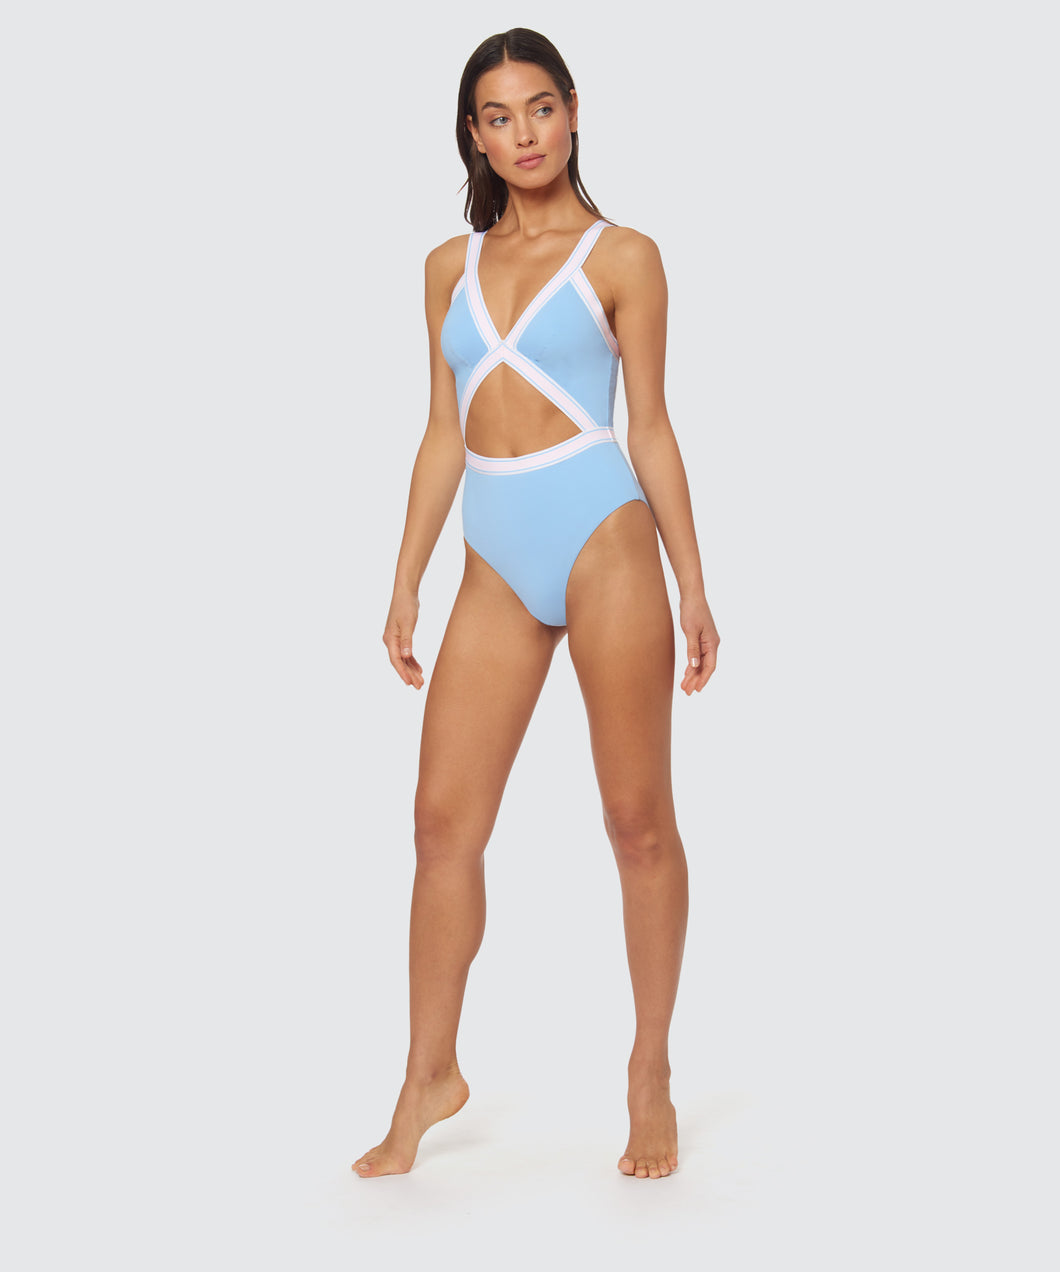 FAST LANE BLAIRE ONE PIECE IN BLUE -   Dolce Vita